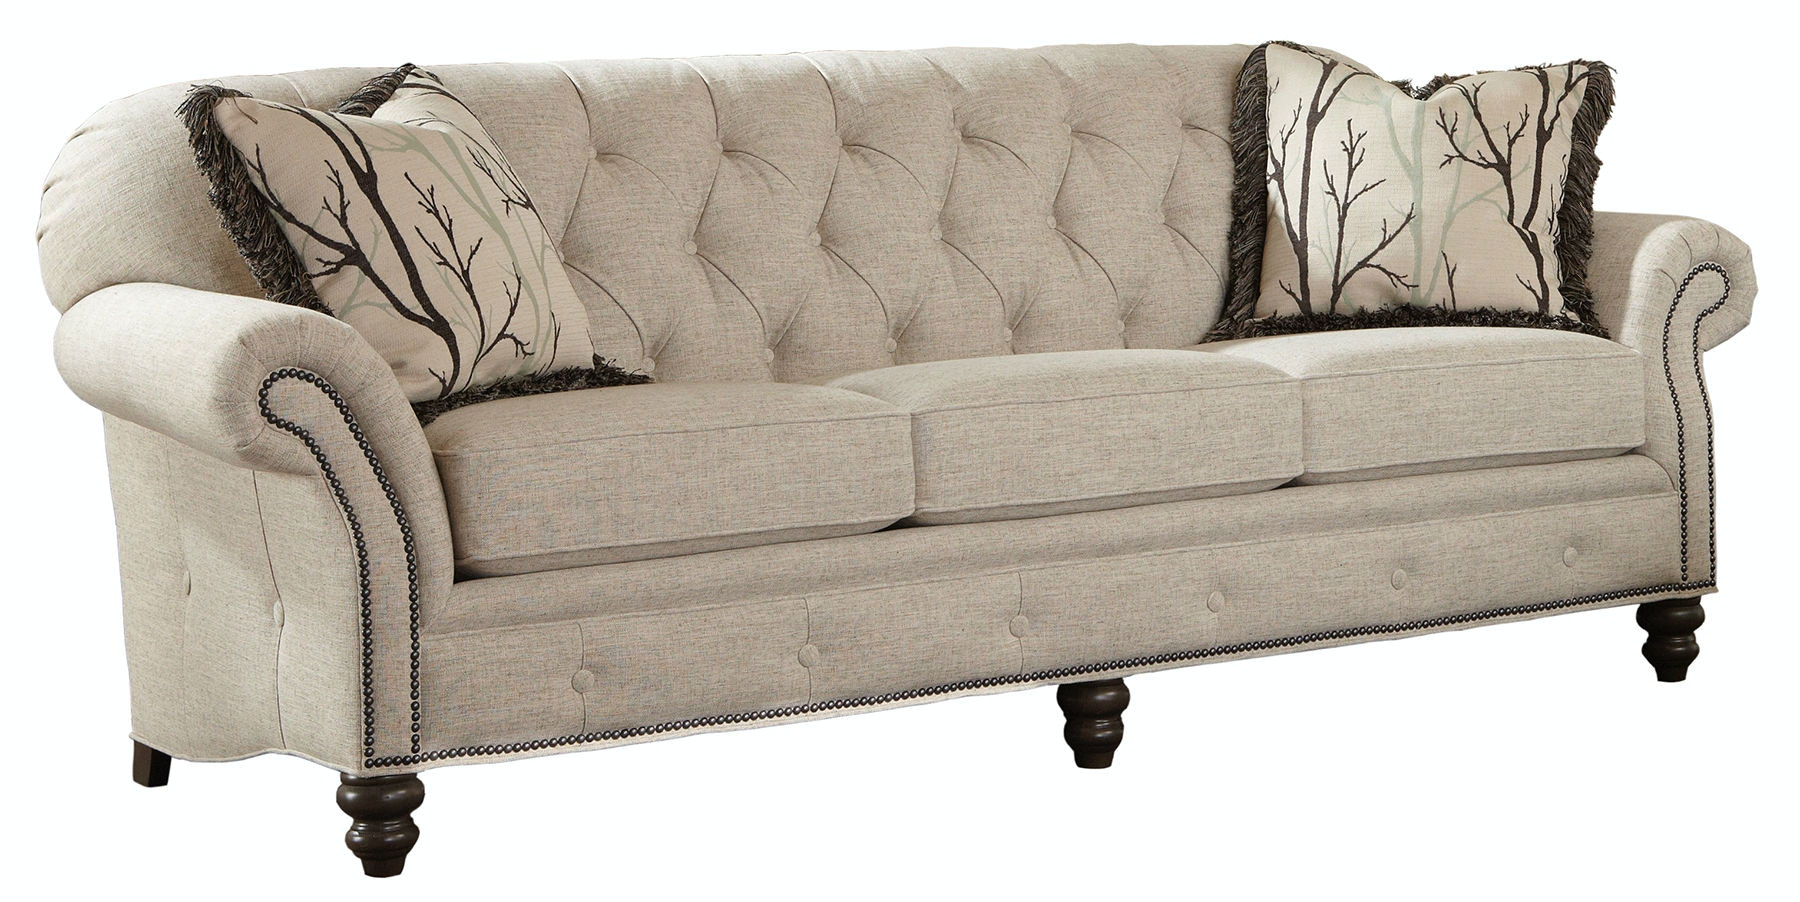 Superieur Smith Brothers 396 Large Sofa SB396 13